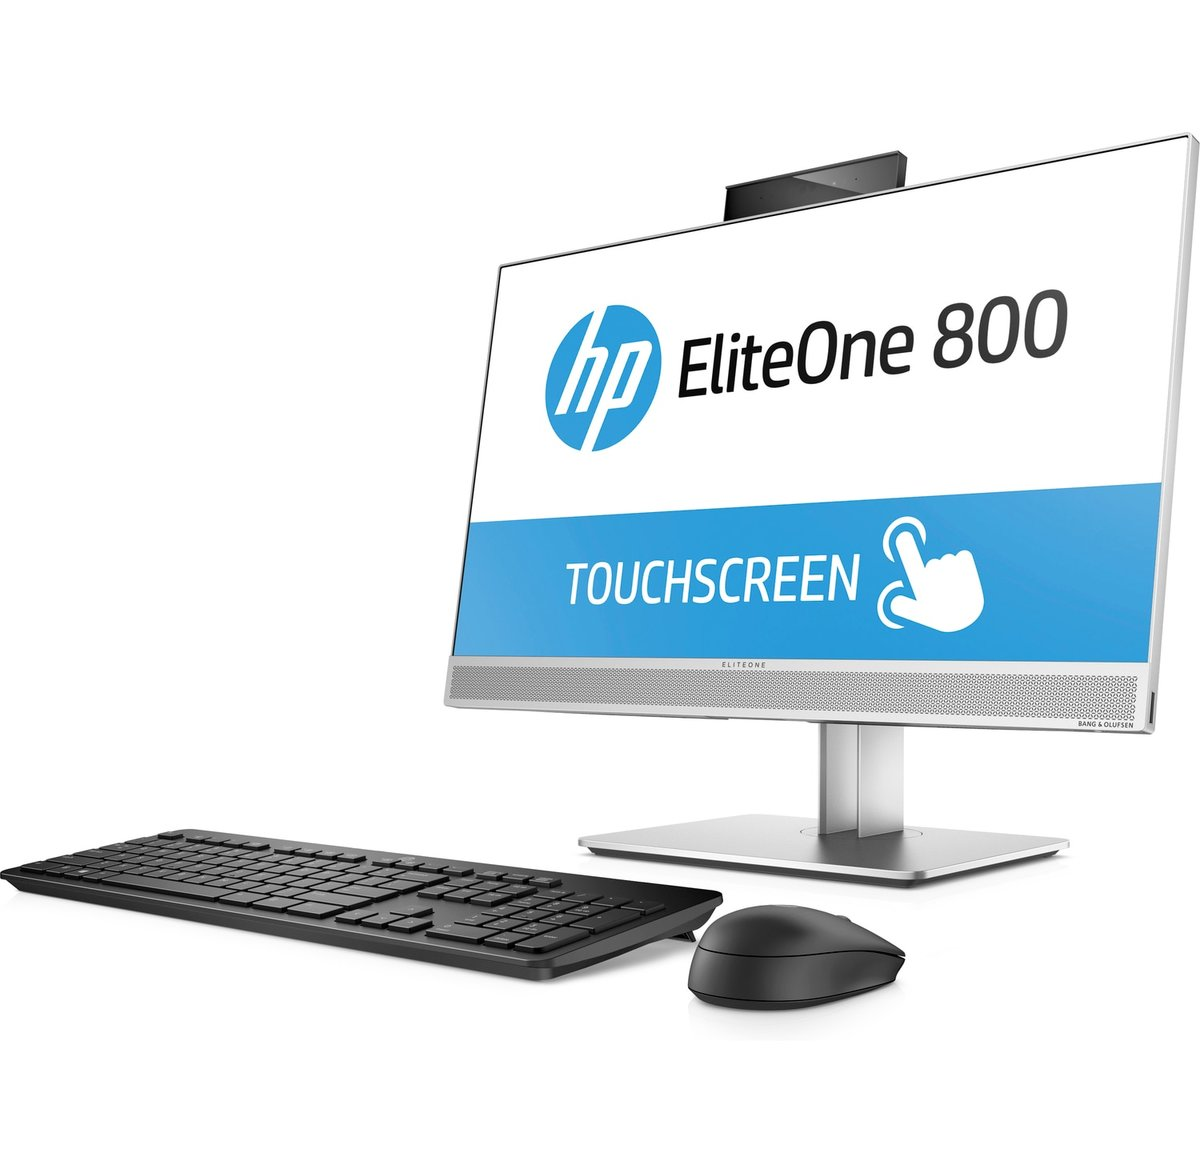 Купить пк HP EliteOne 800 G3 All-in-One Touch (1ND01EA